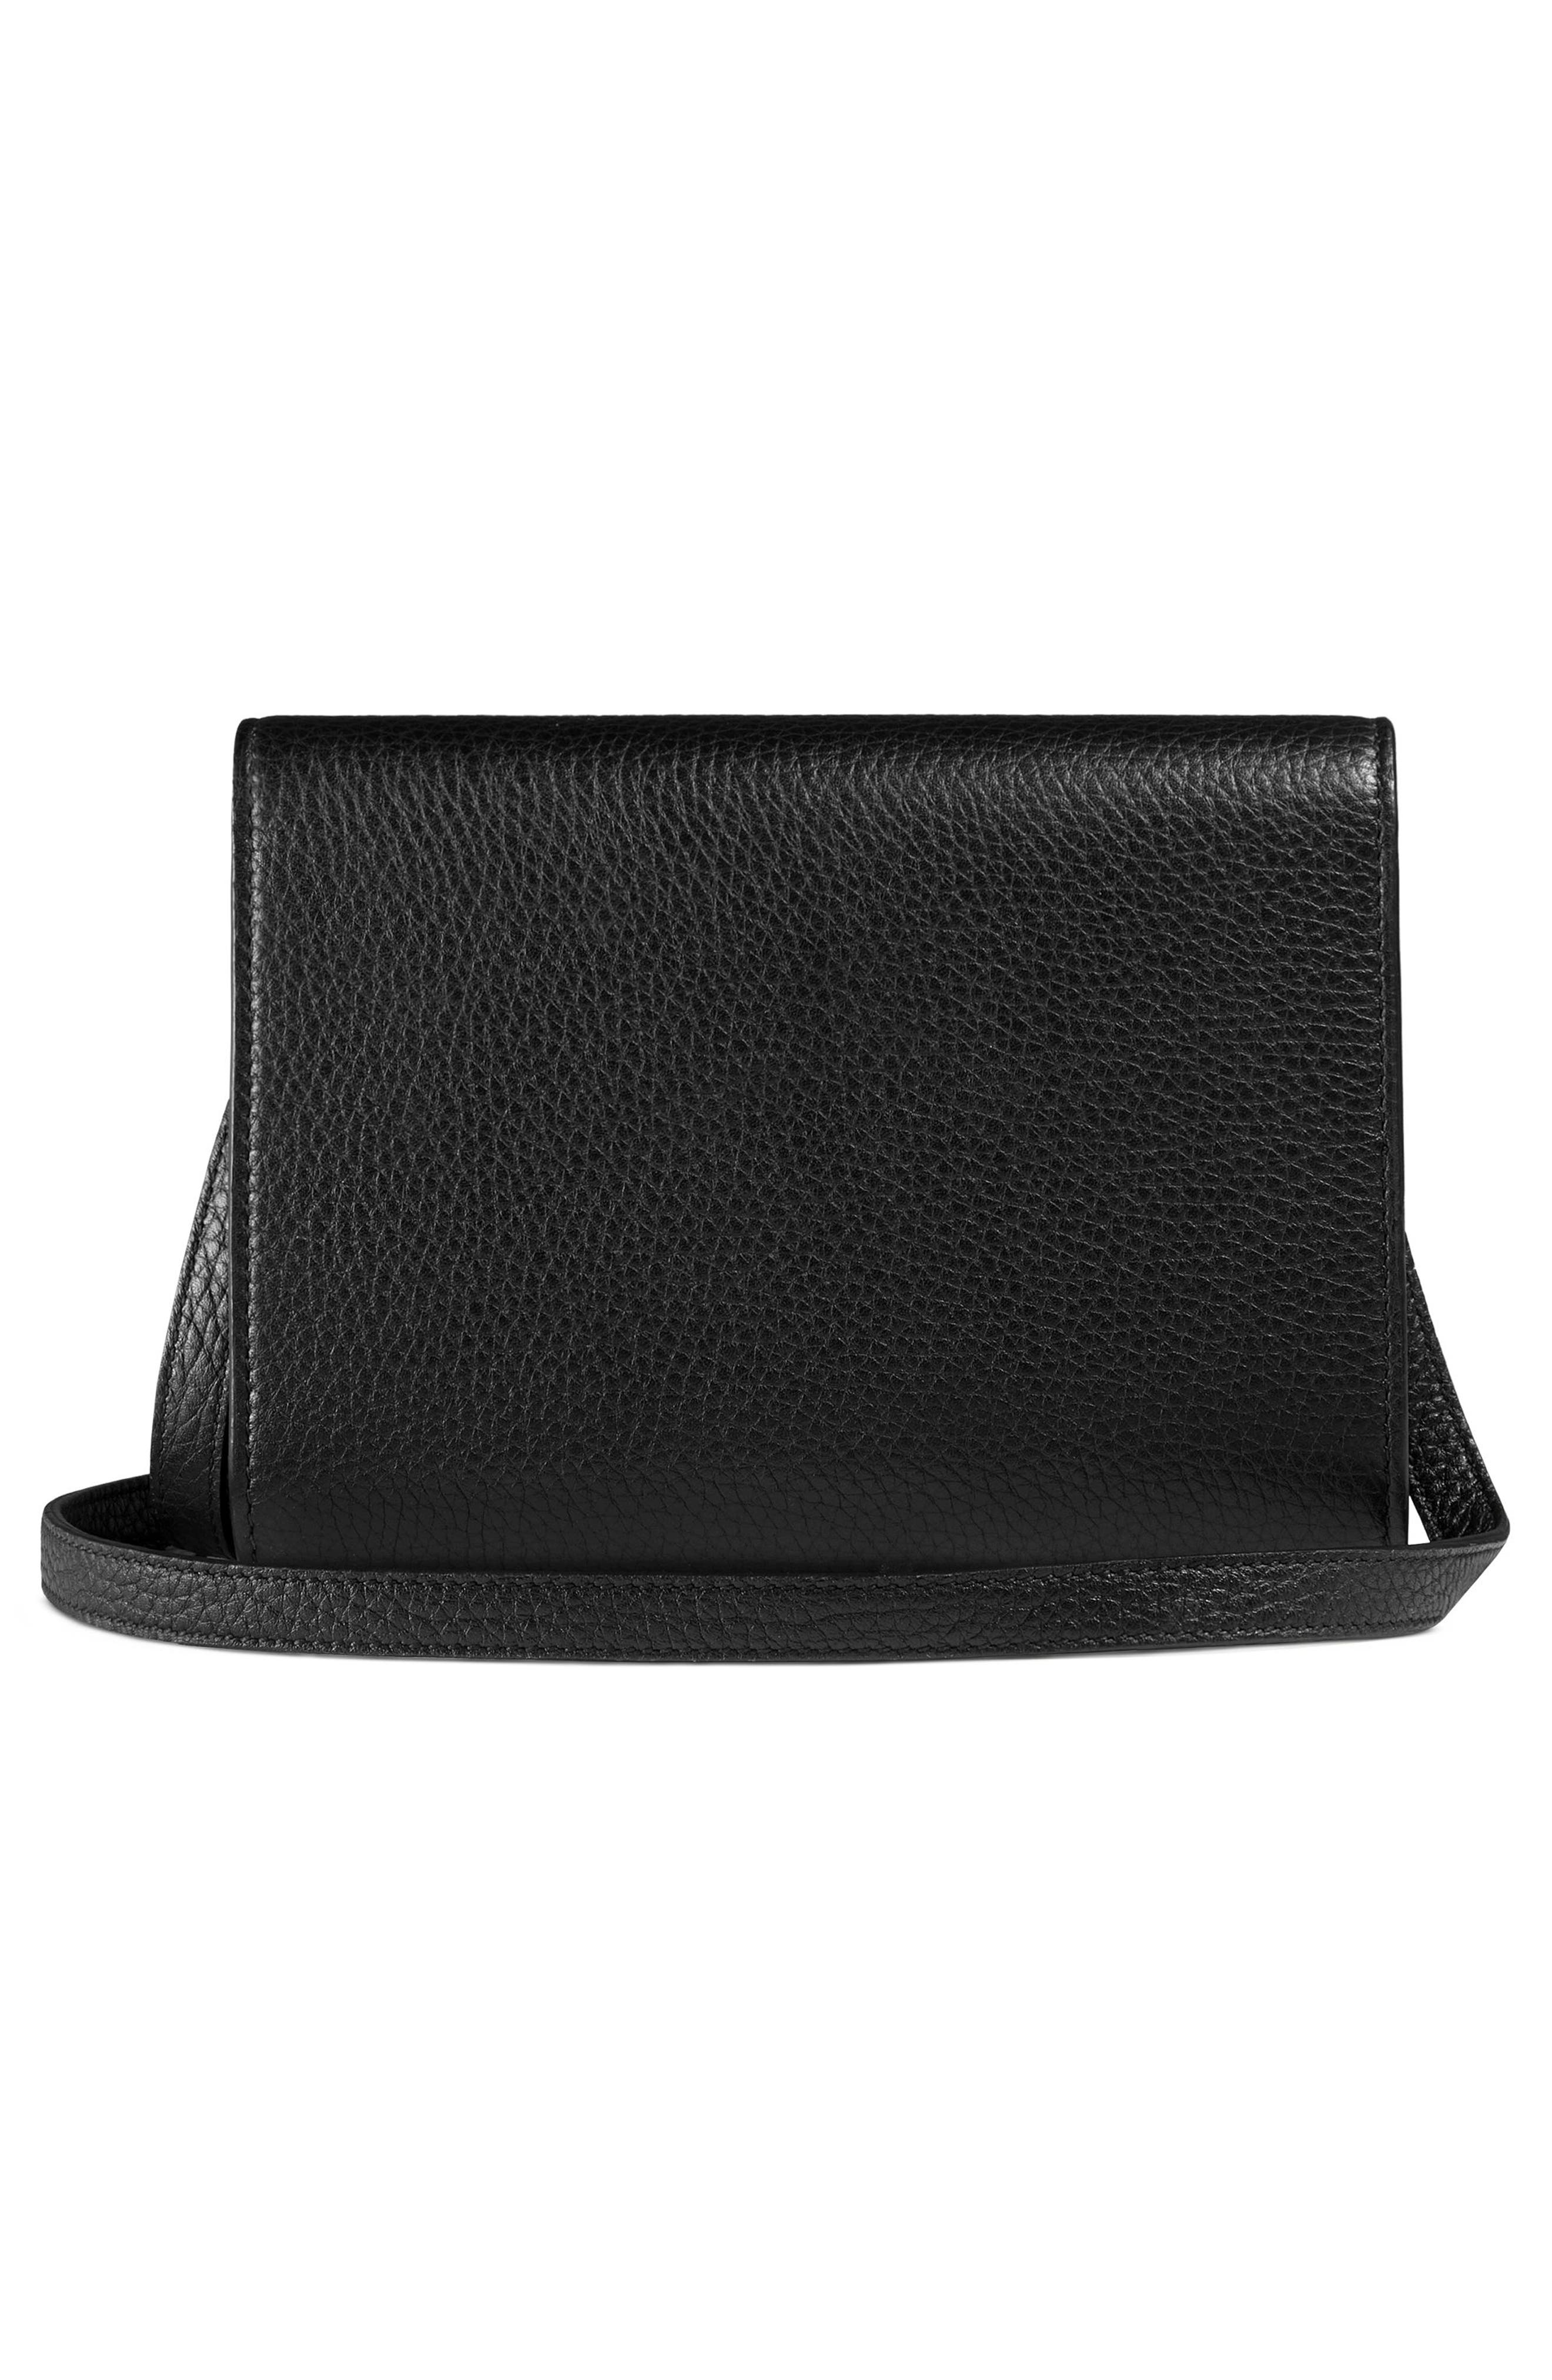 Animalier Bee Leather Wallet,                             Alternate thumbnail 3, color,                             Nero